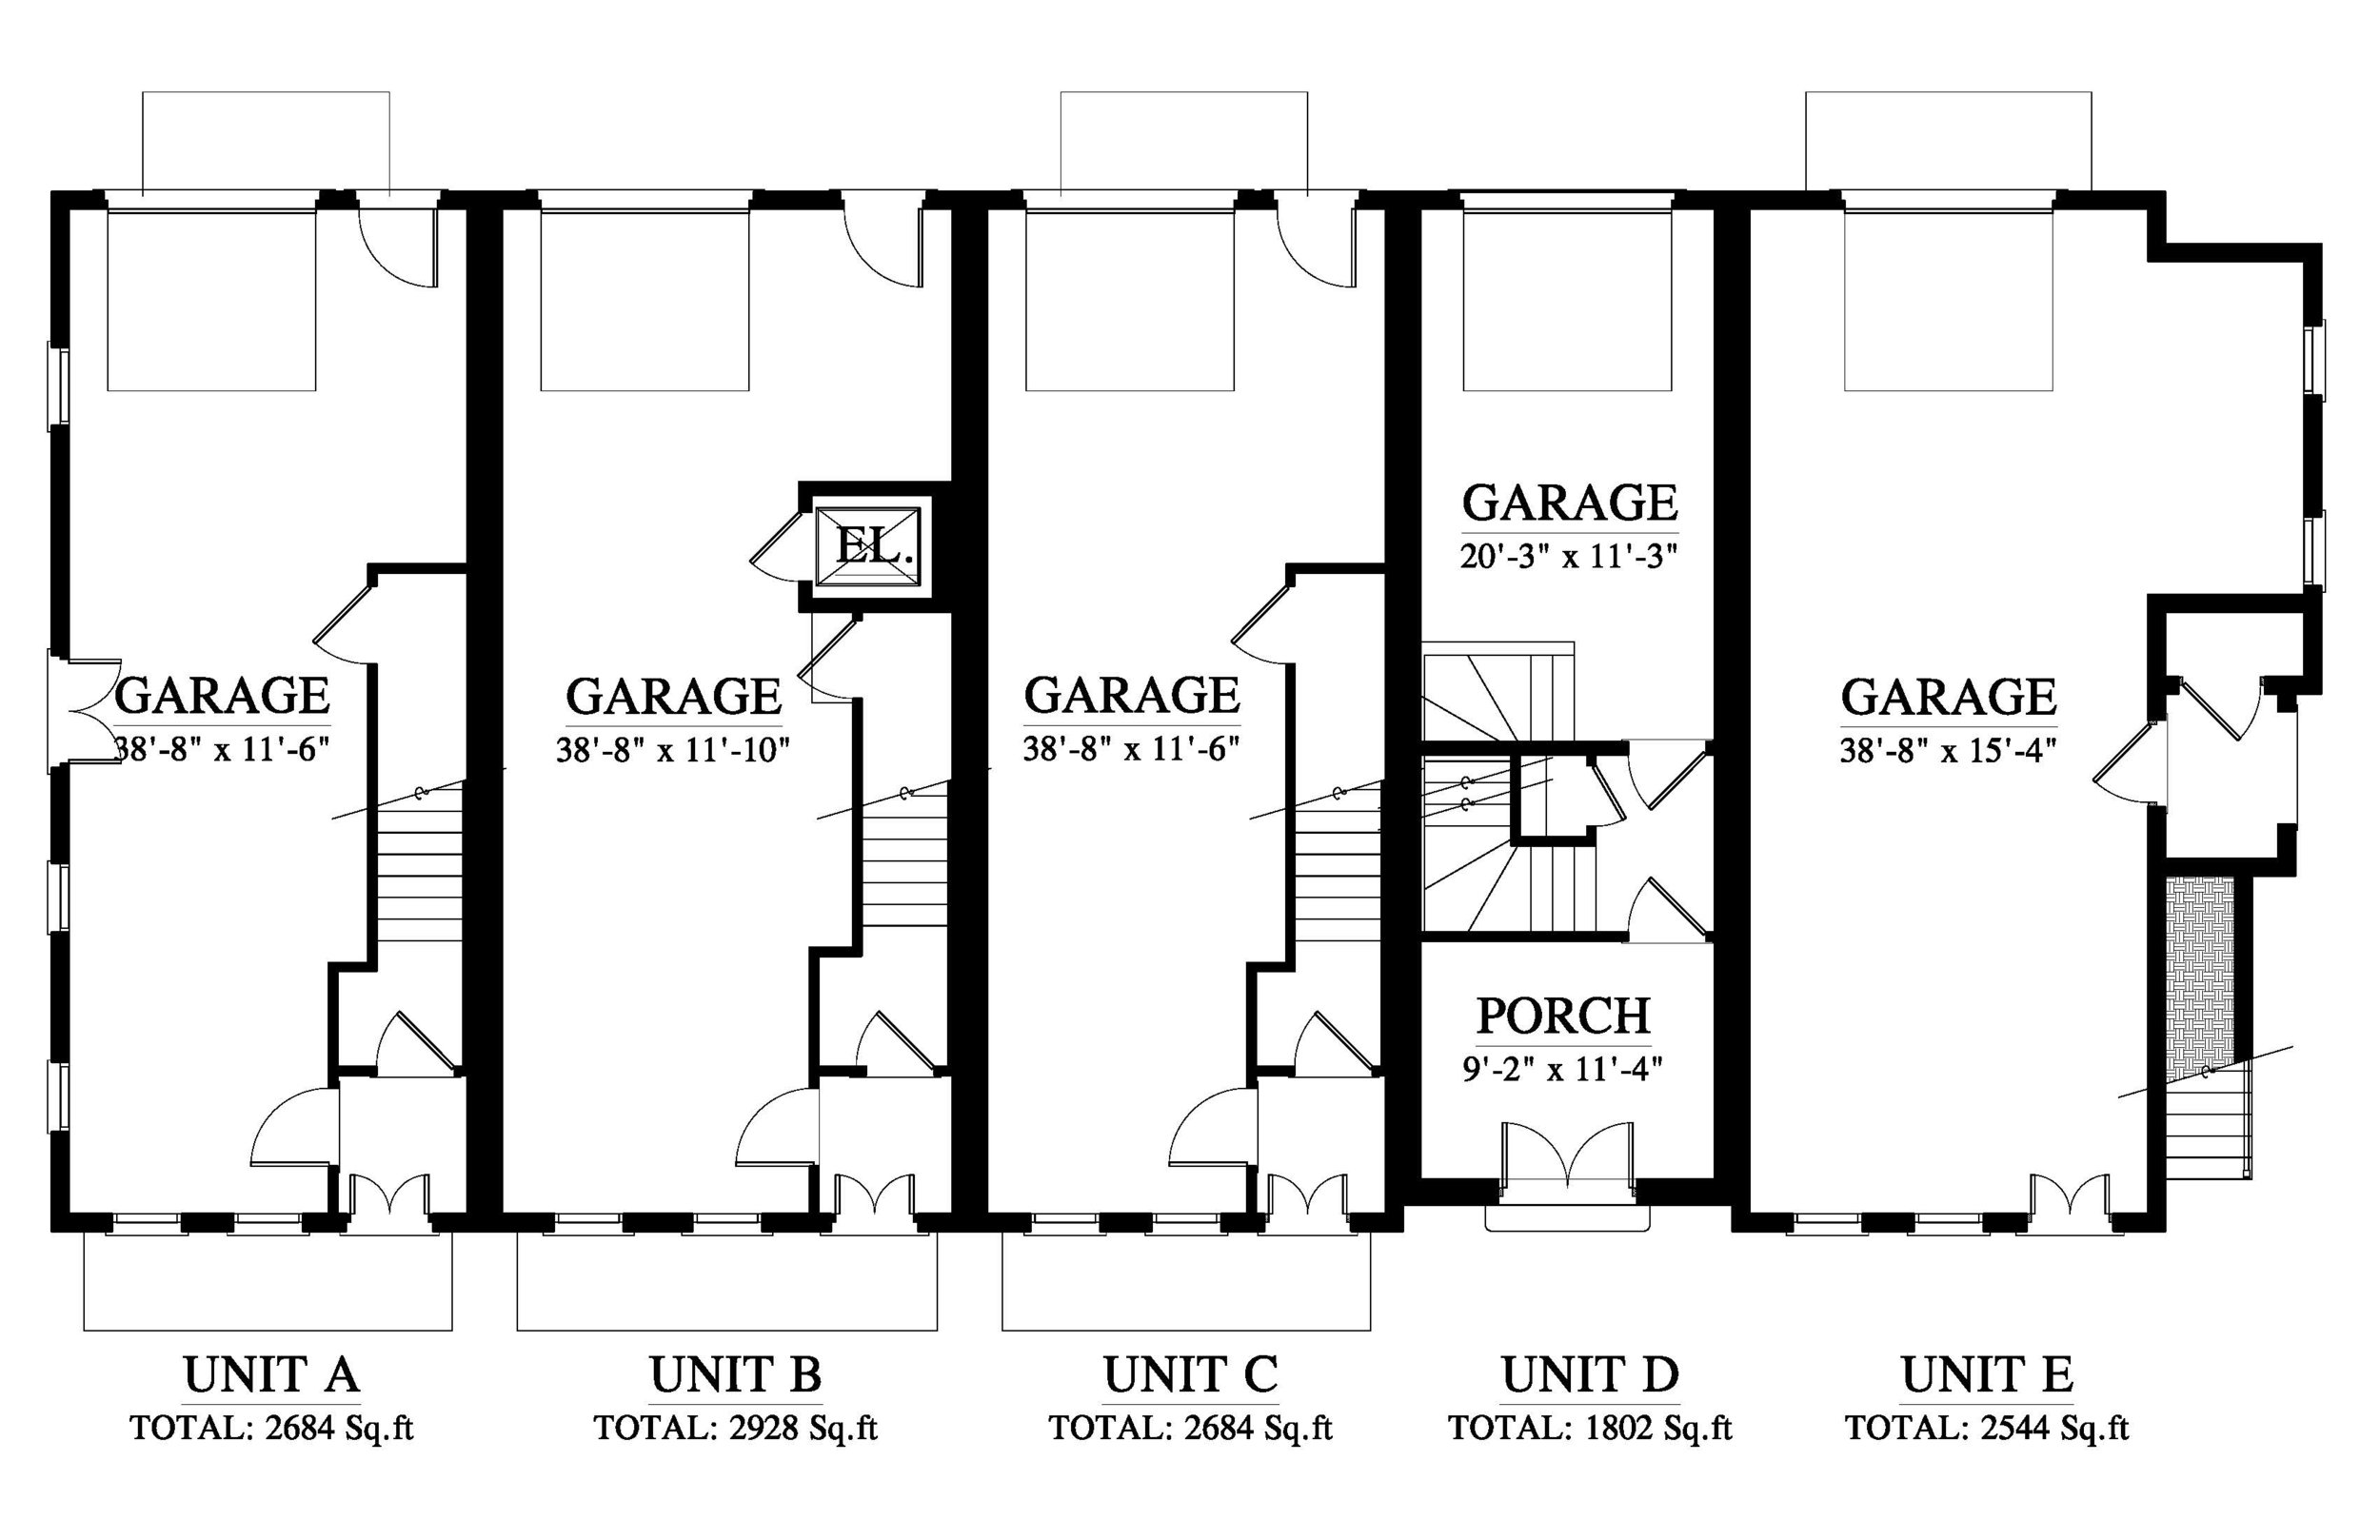 1st Level - Garage